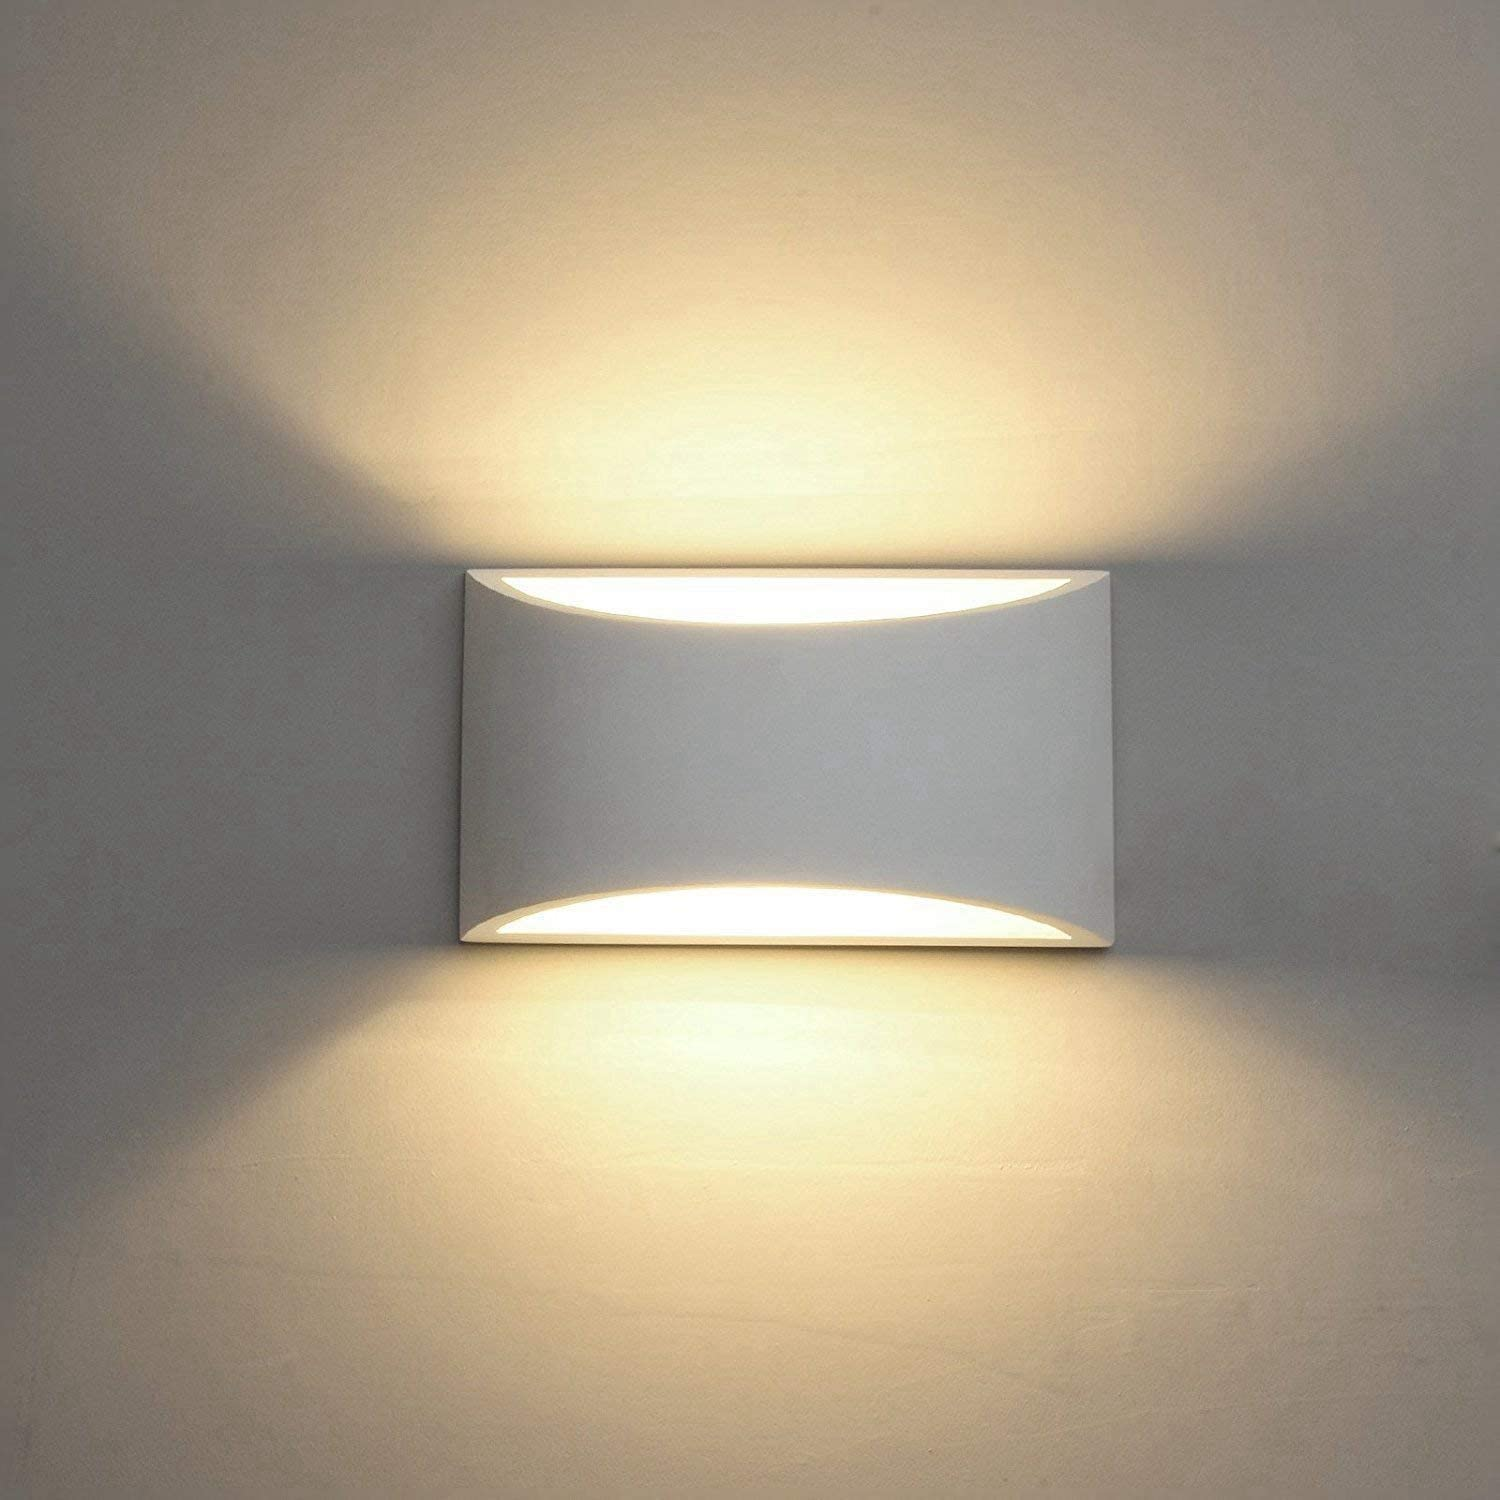 Modern LED Wall Sconce Lighting Fixture L&s 7W Warm White 2700K Up and Down Indoor Plaster  sc 1 st  Amazon.com & Wall Sconces | Amazon.com | Lighting u0026 Ceiling Fans - Wall Lights